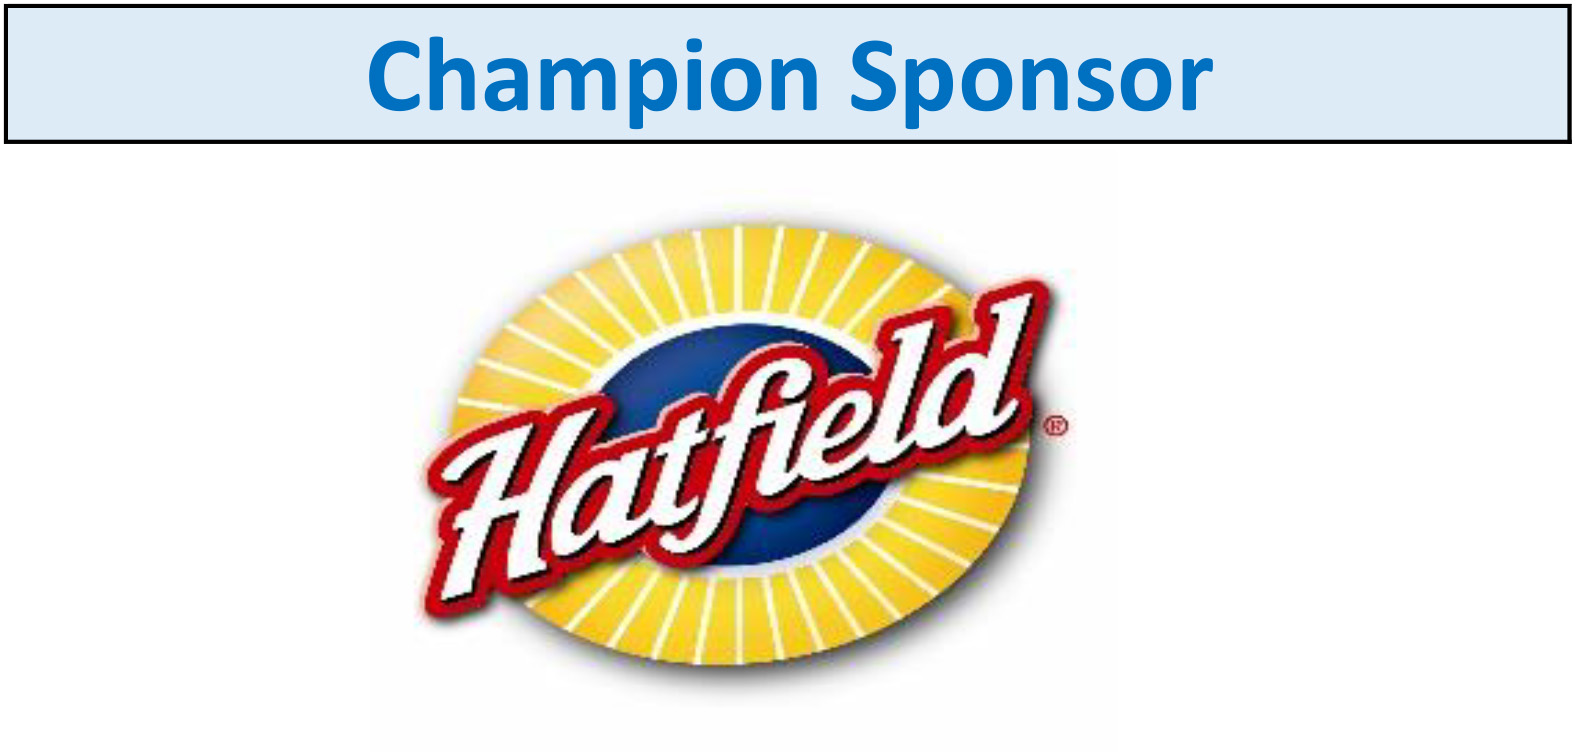 Website-sponsorship-Champion1